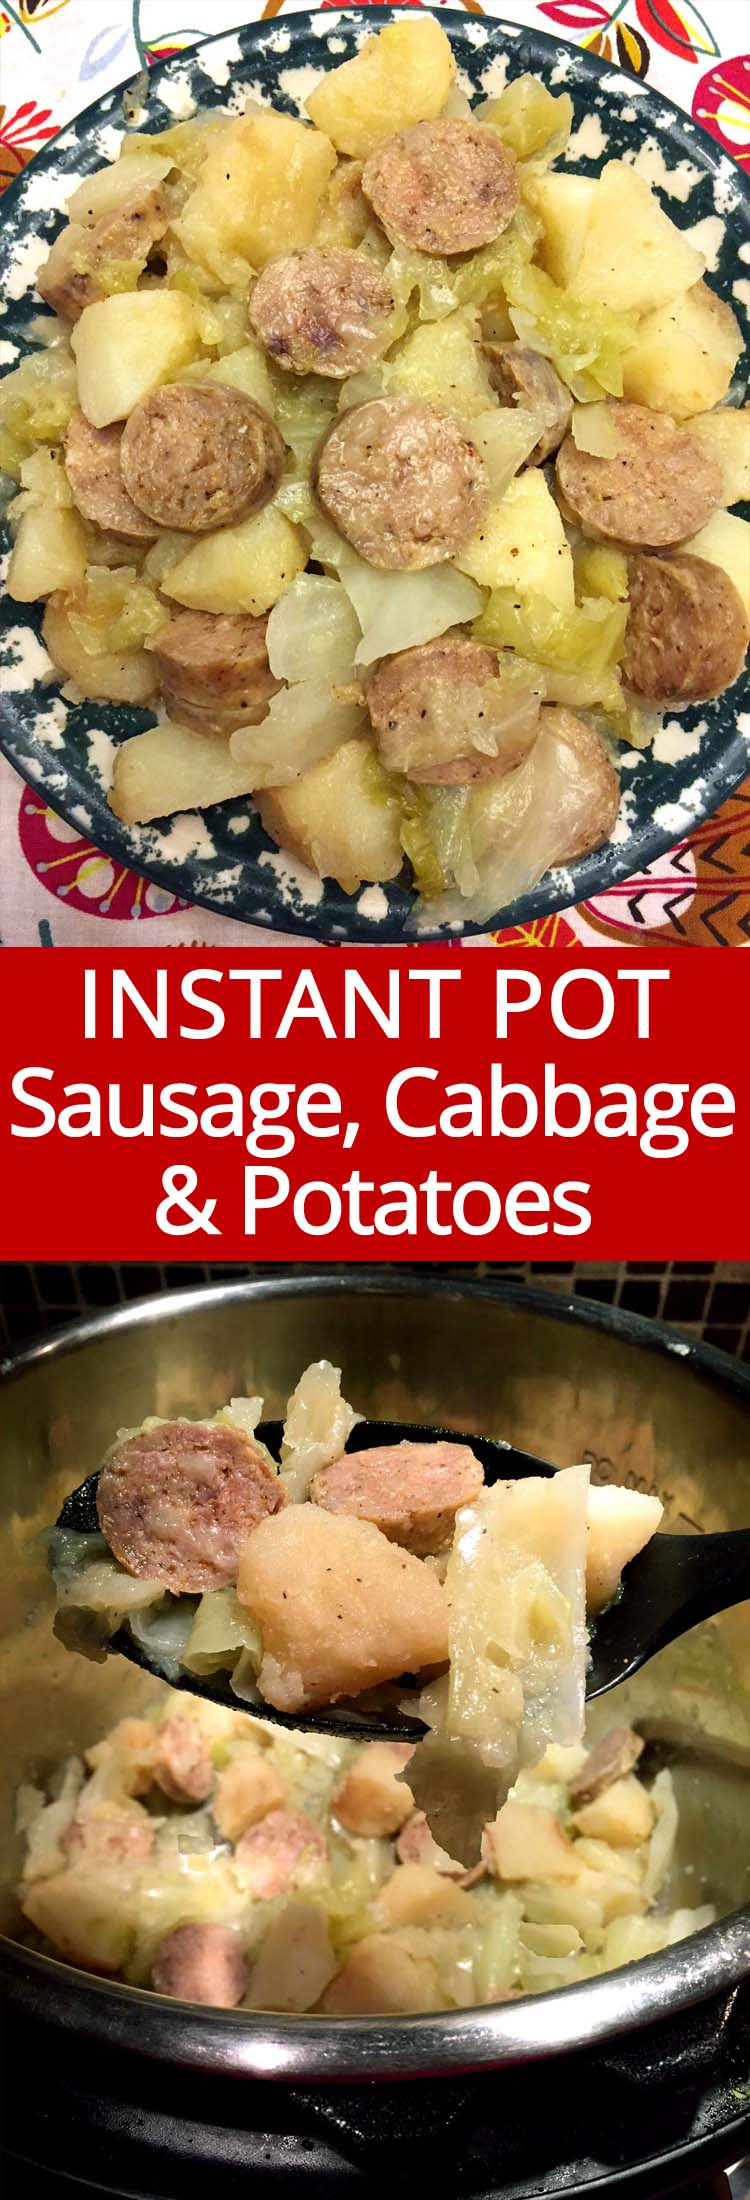 This Instant Pot kielbasa sausage, cabbage and potatoes dinner is ready in 10 minutes! Sooooo yummy! I love my instant pot!